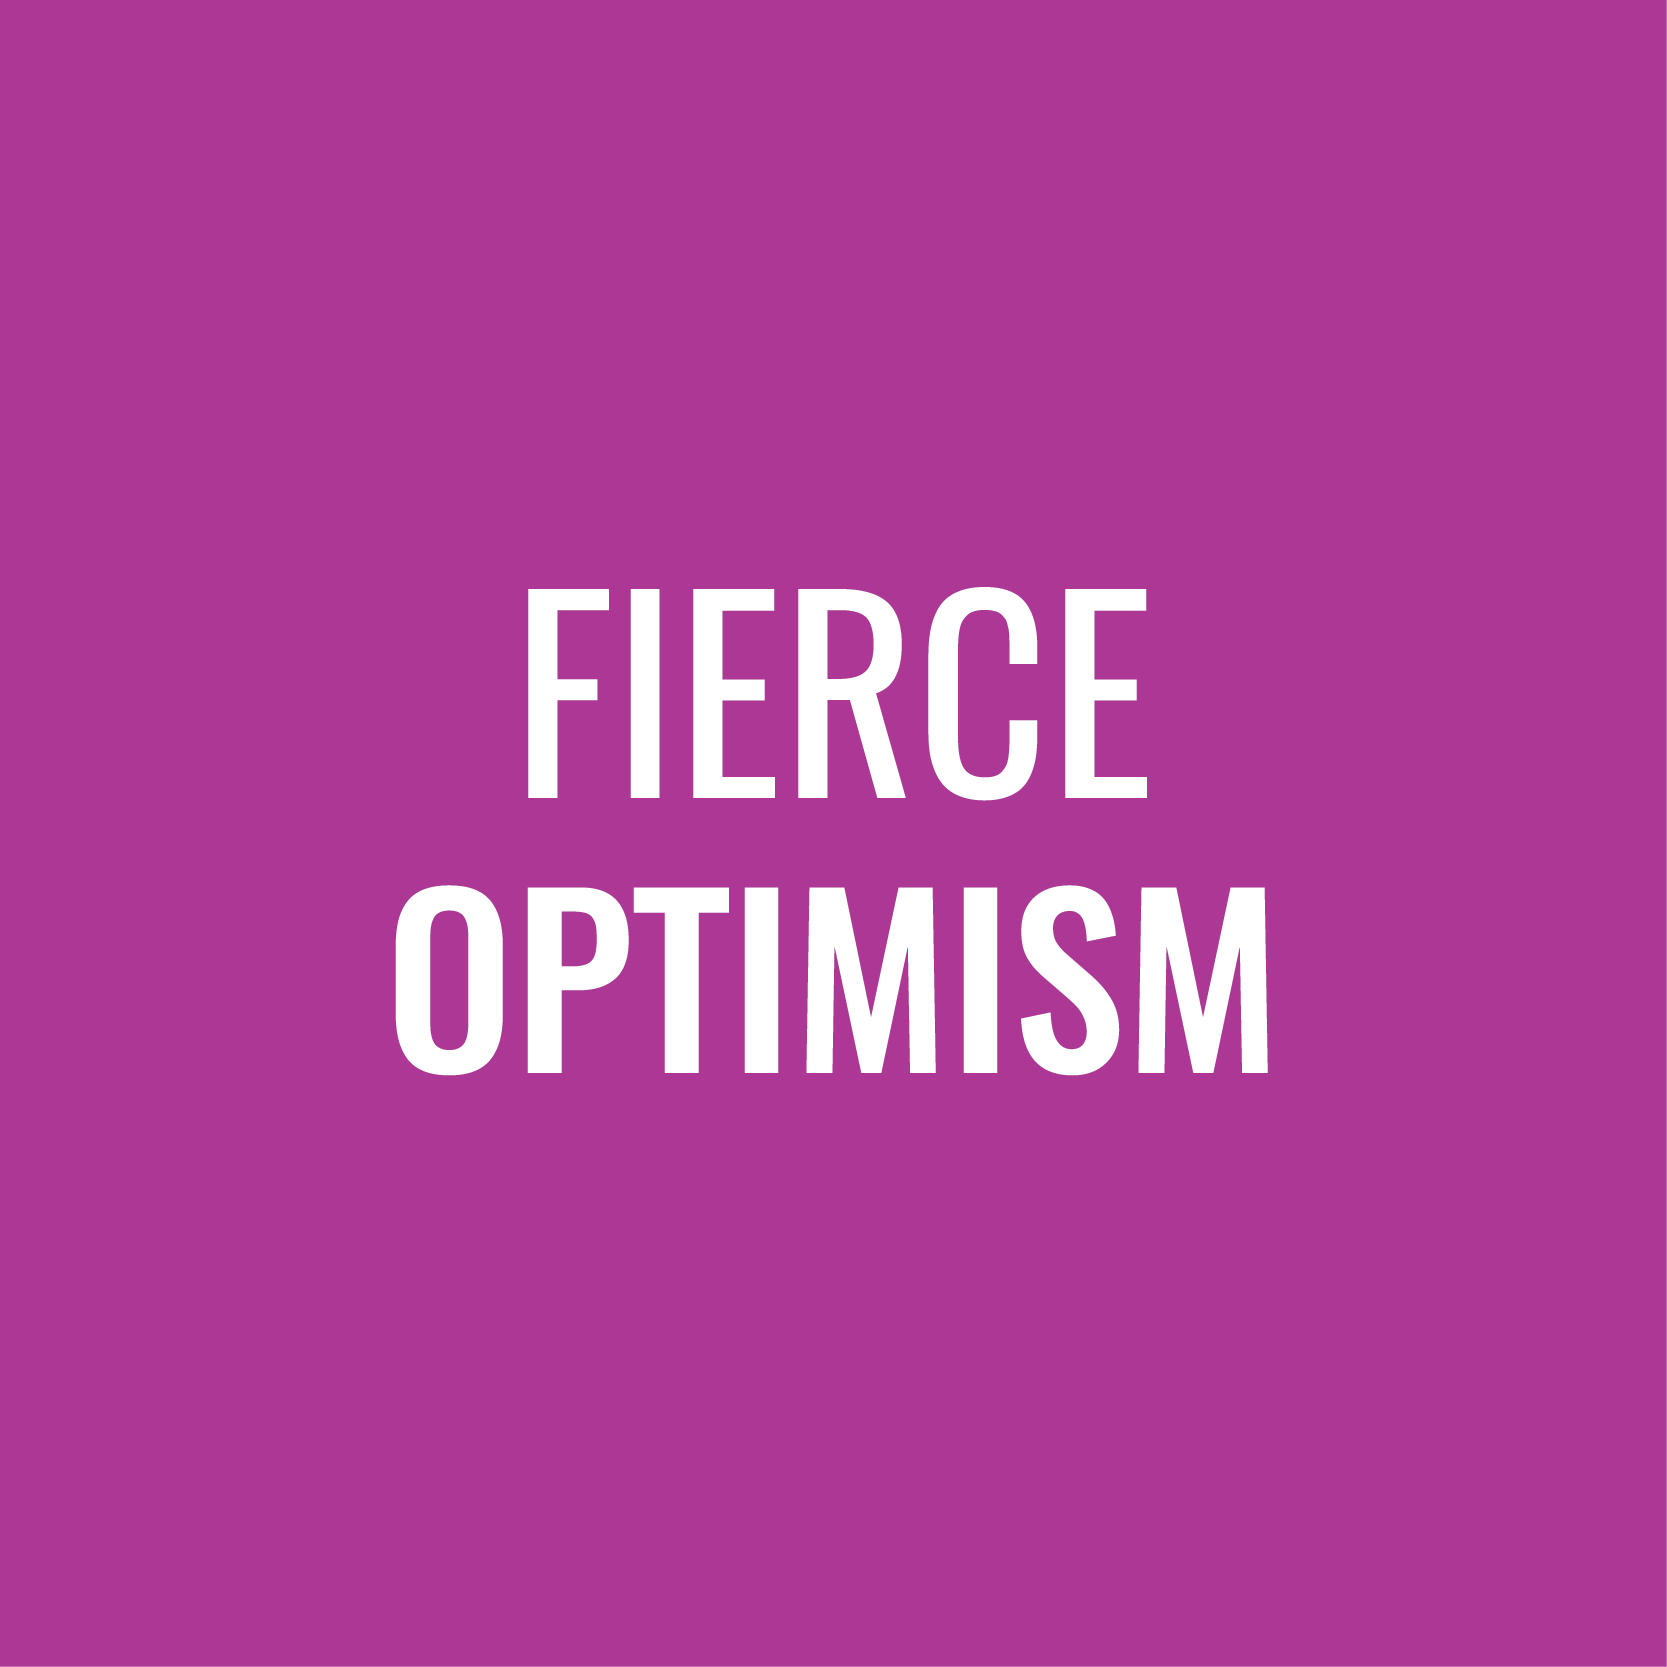 Fierce Optimism-04.png